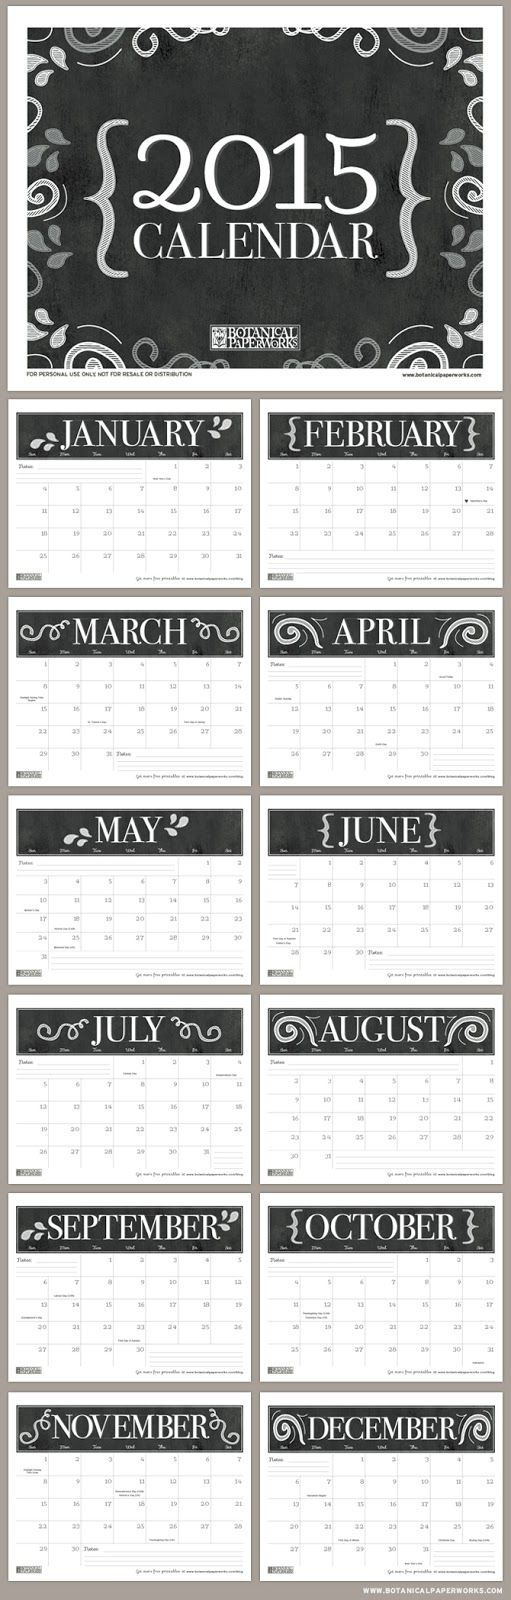 112 best planner images on Pinterest | Free printables, Day planners ...